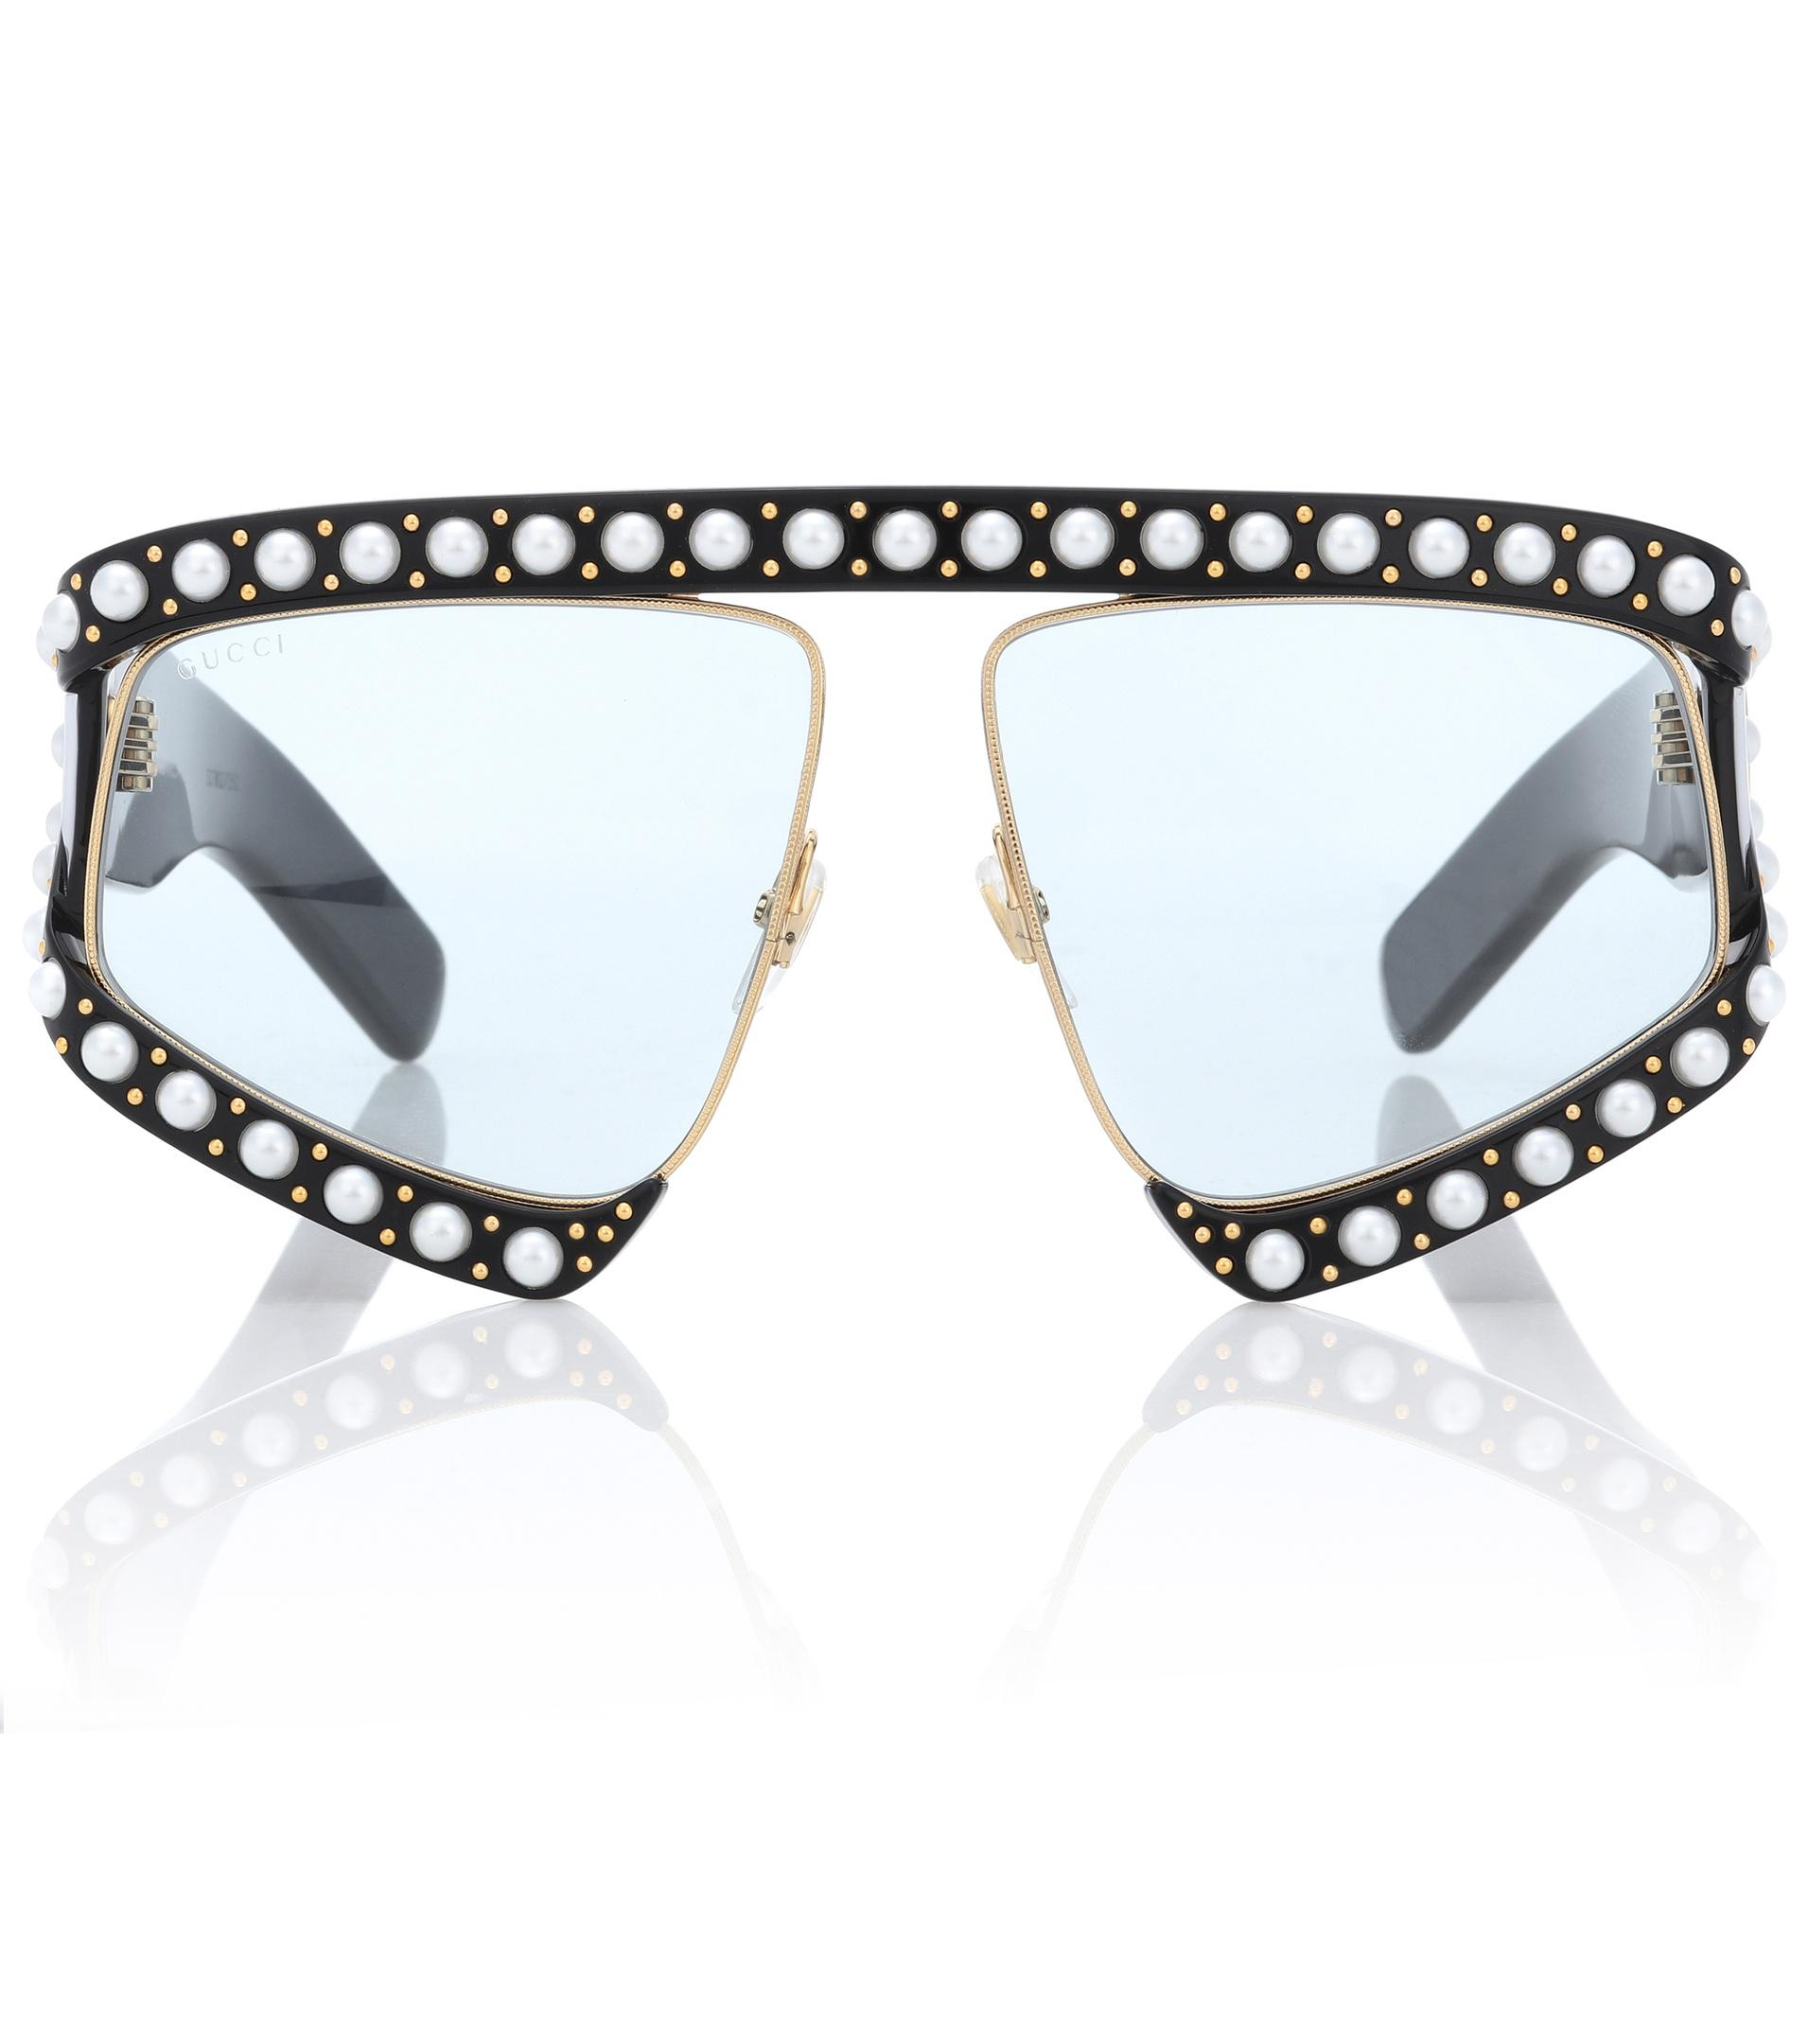 5e7ad39fe3 Lyst - Gucci Faux Pearl-embellished Sunglasses in Black - Save 26%